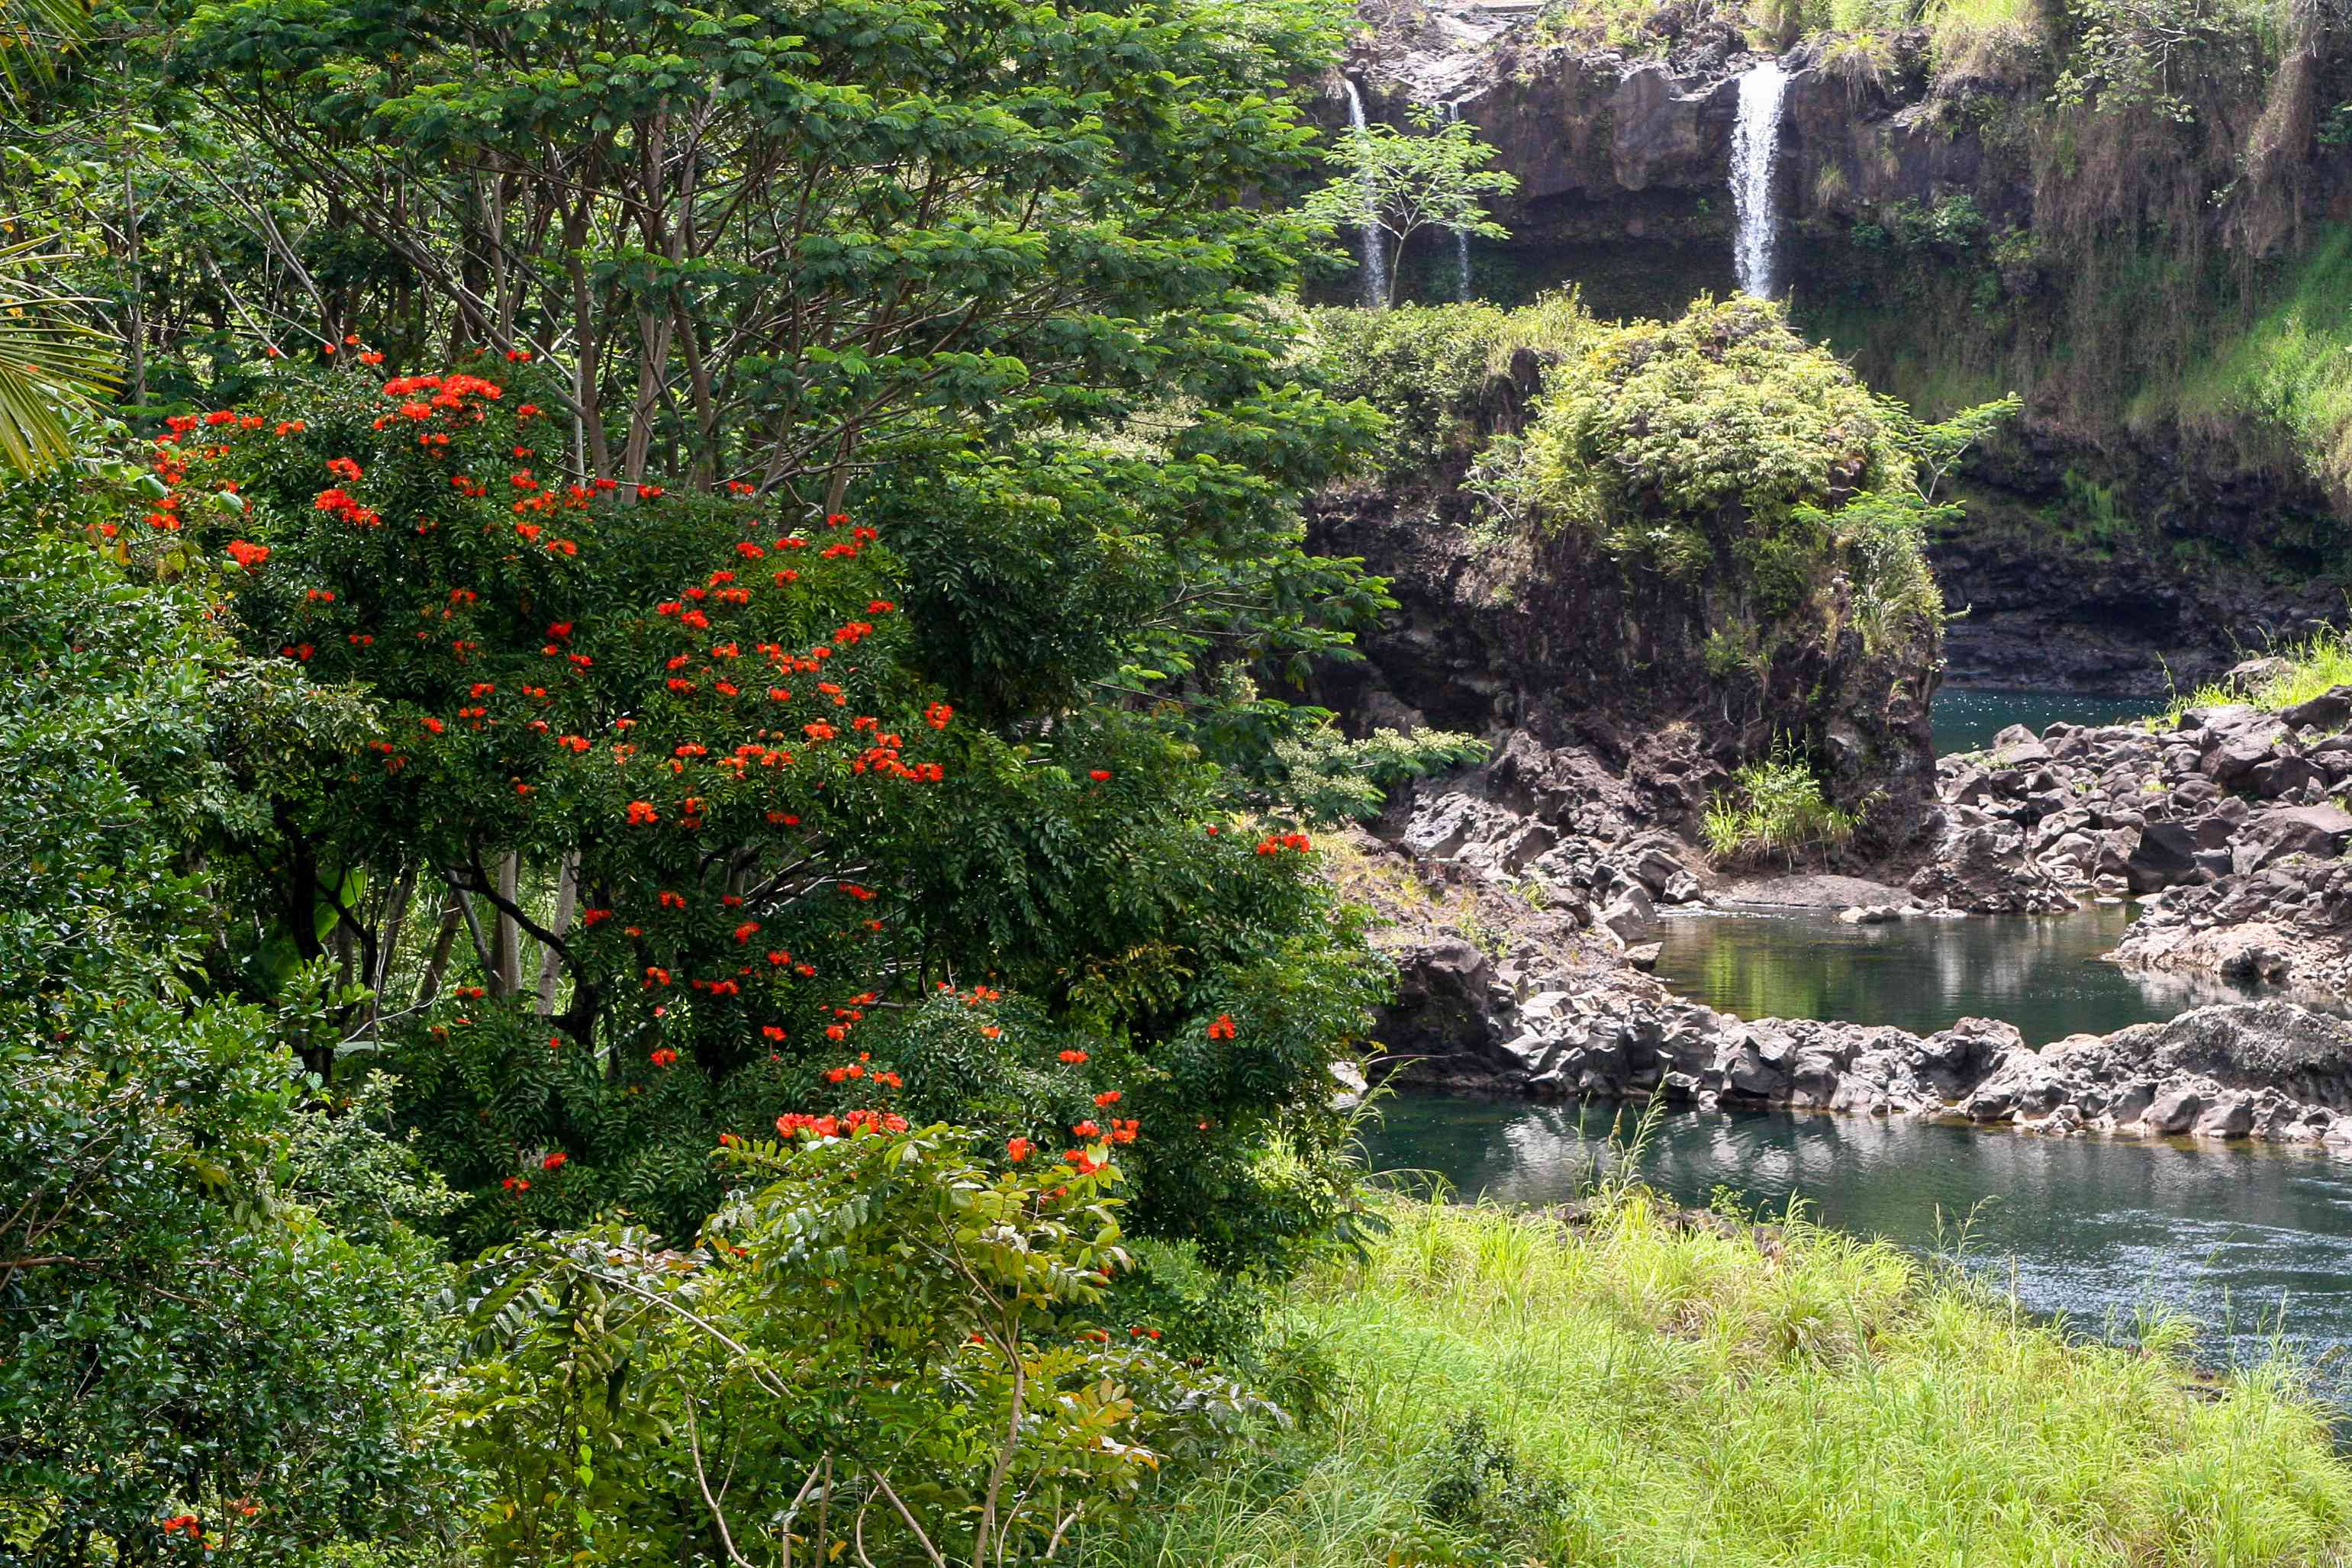 Parque Estatal Hāpuna Beach en Big Island, Hawai